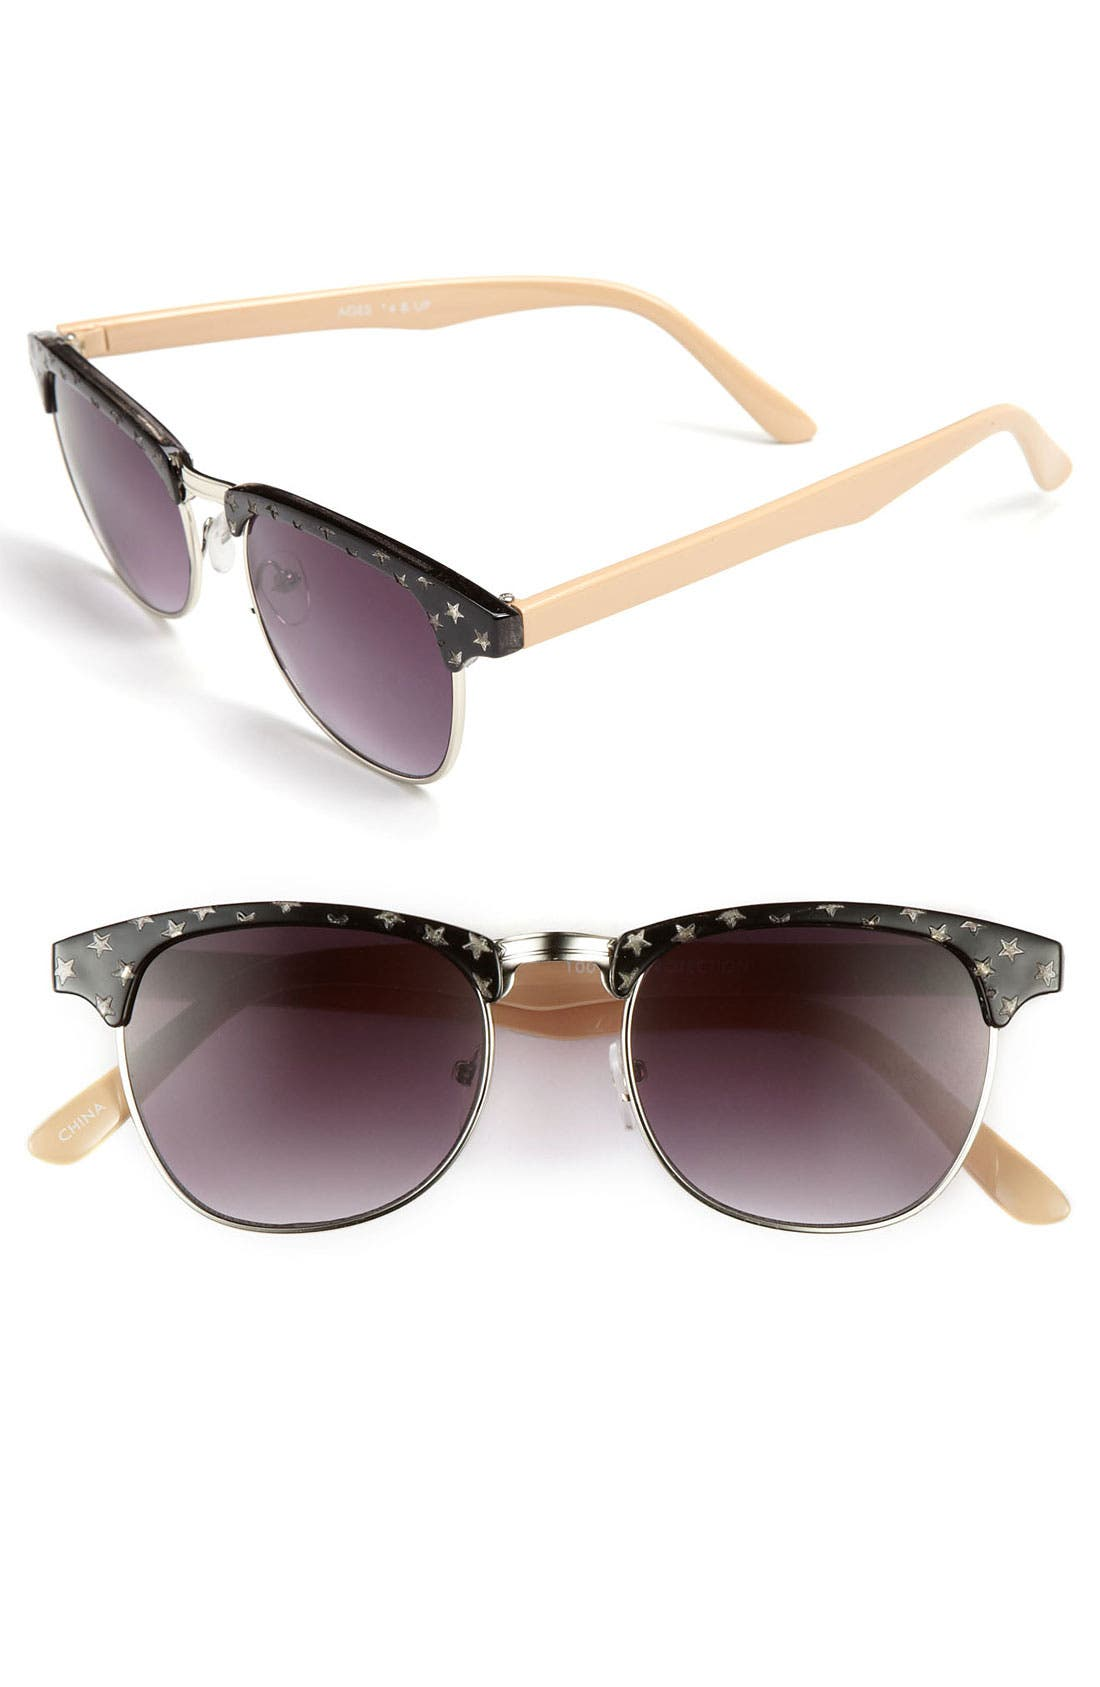 Alternate Image 1 Selected - FE NY 'Star' Sunglasses